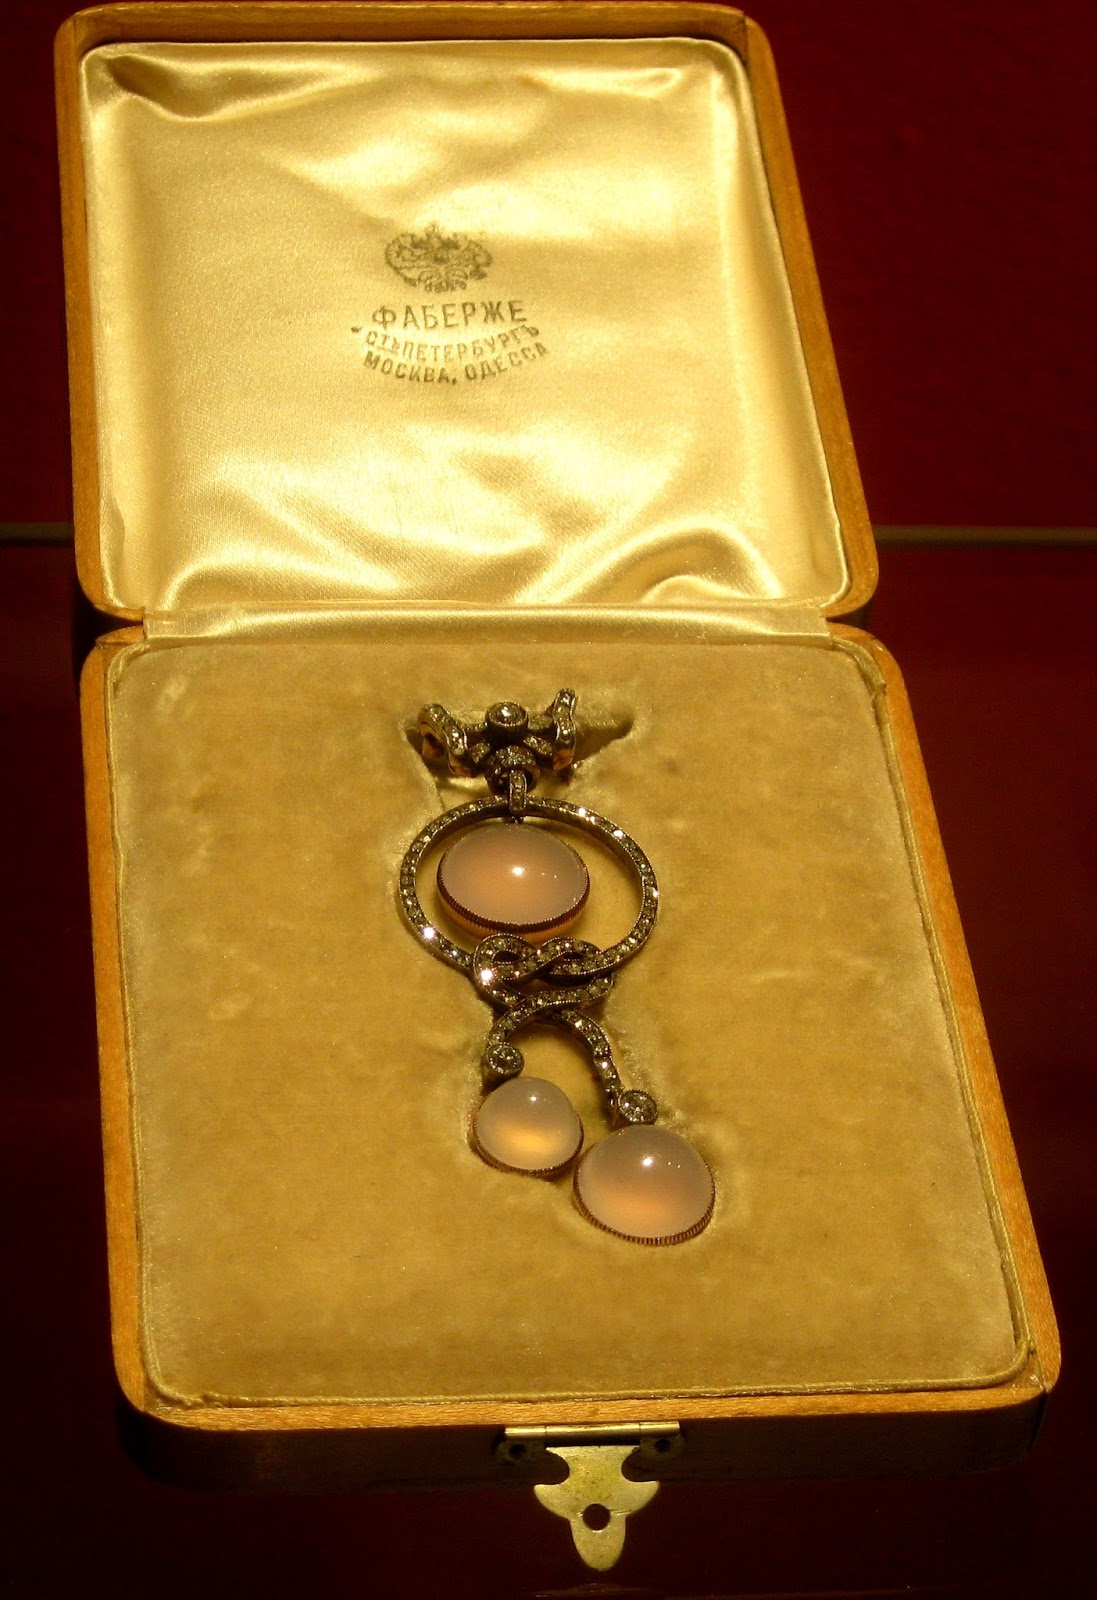 Joan Rivers' Private Collection Gold Silver Chalcedony and Diamond Fabergé Brooch [photo/edit by sookietex]